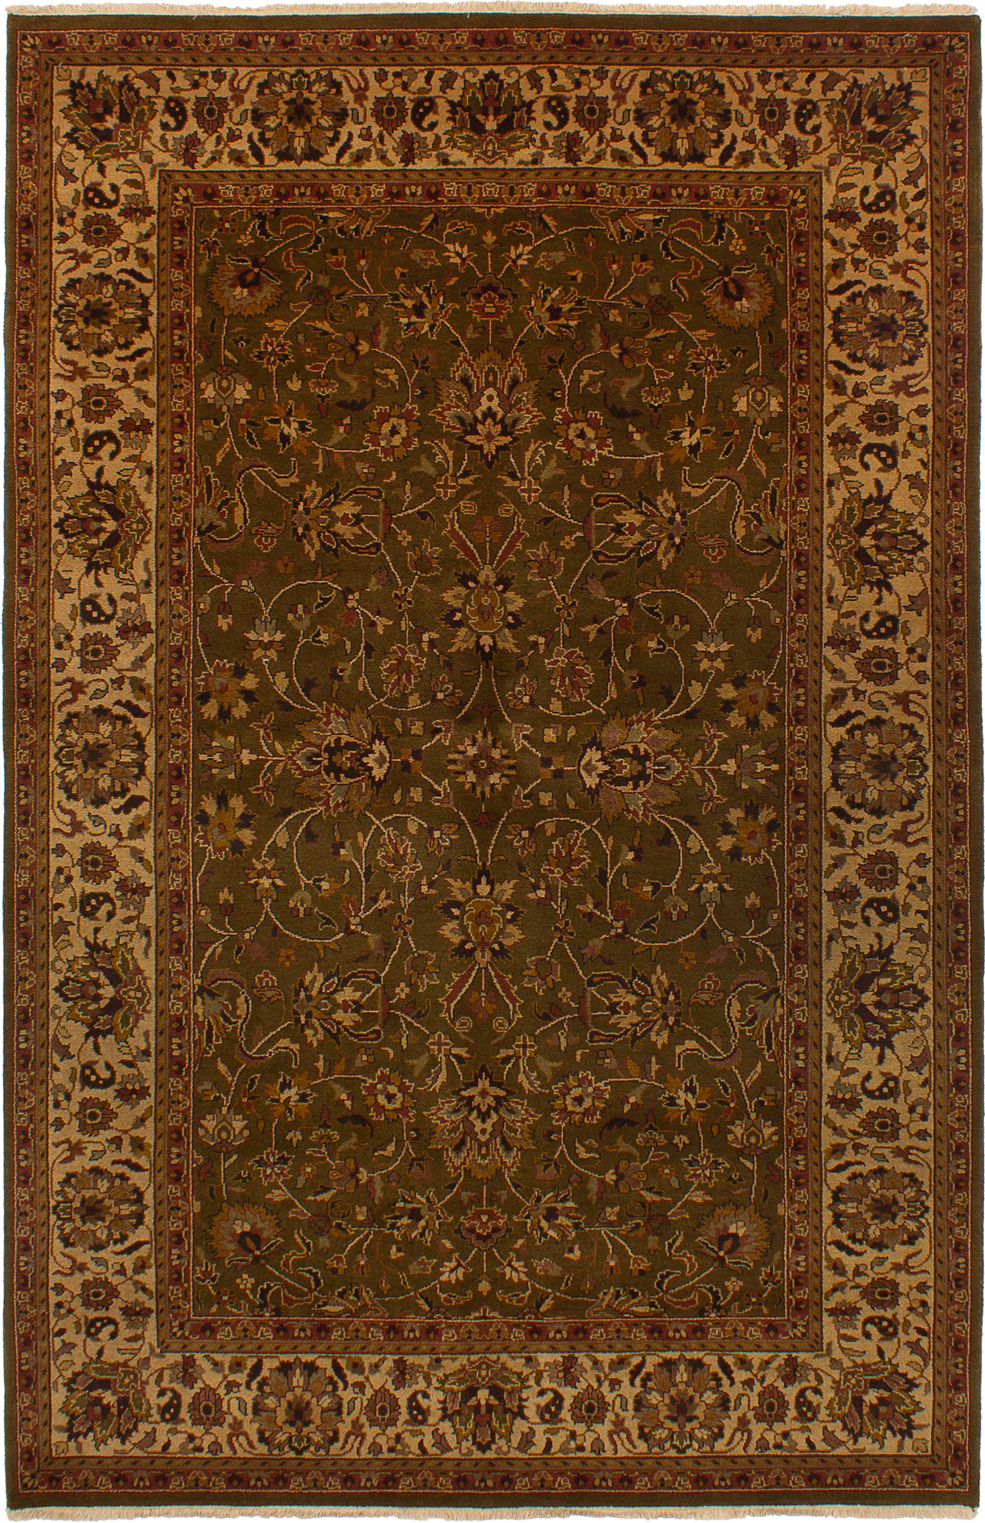 """Hand-knotted Jamshidpour Dark Olive Green Wool Rug 5'9"""" x 8'11"""" Size: 5'9"""" x 8'11"""""""